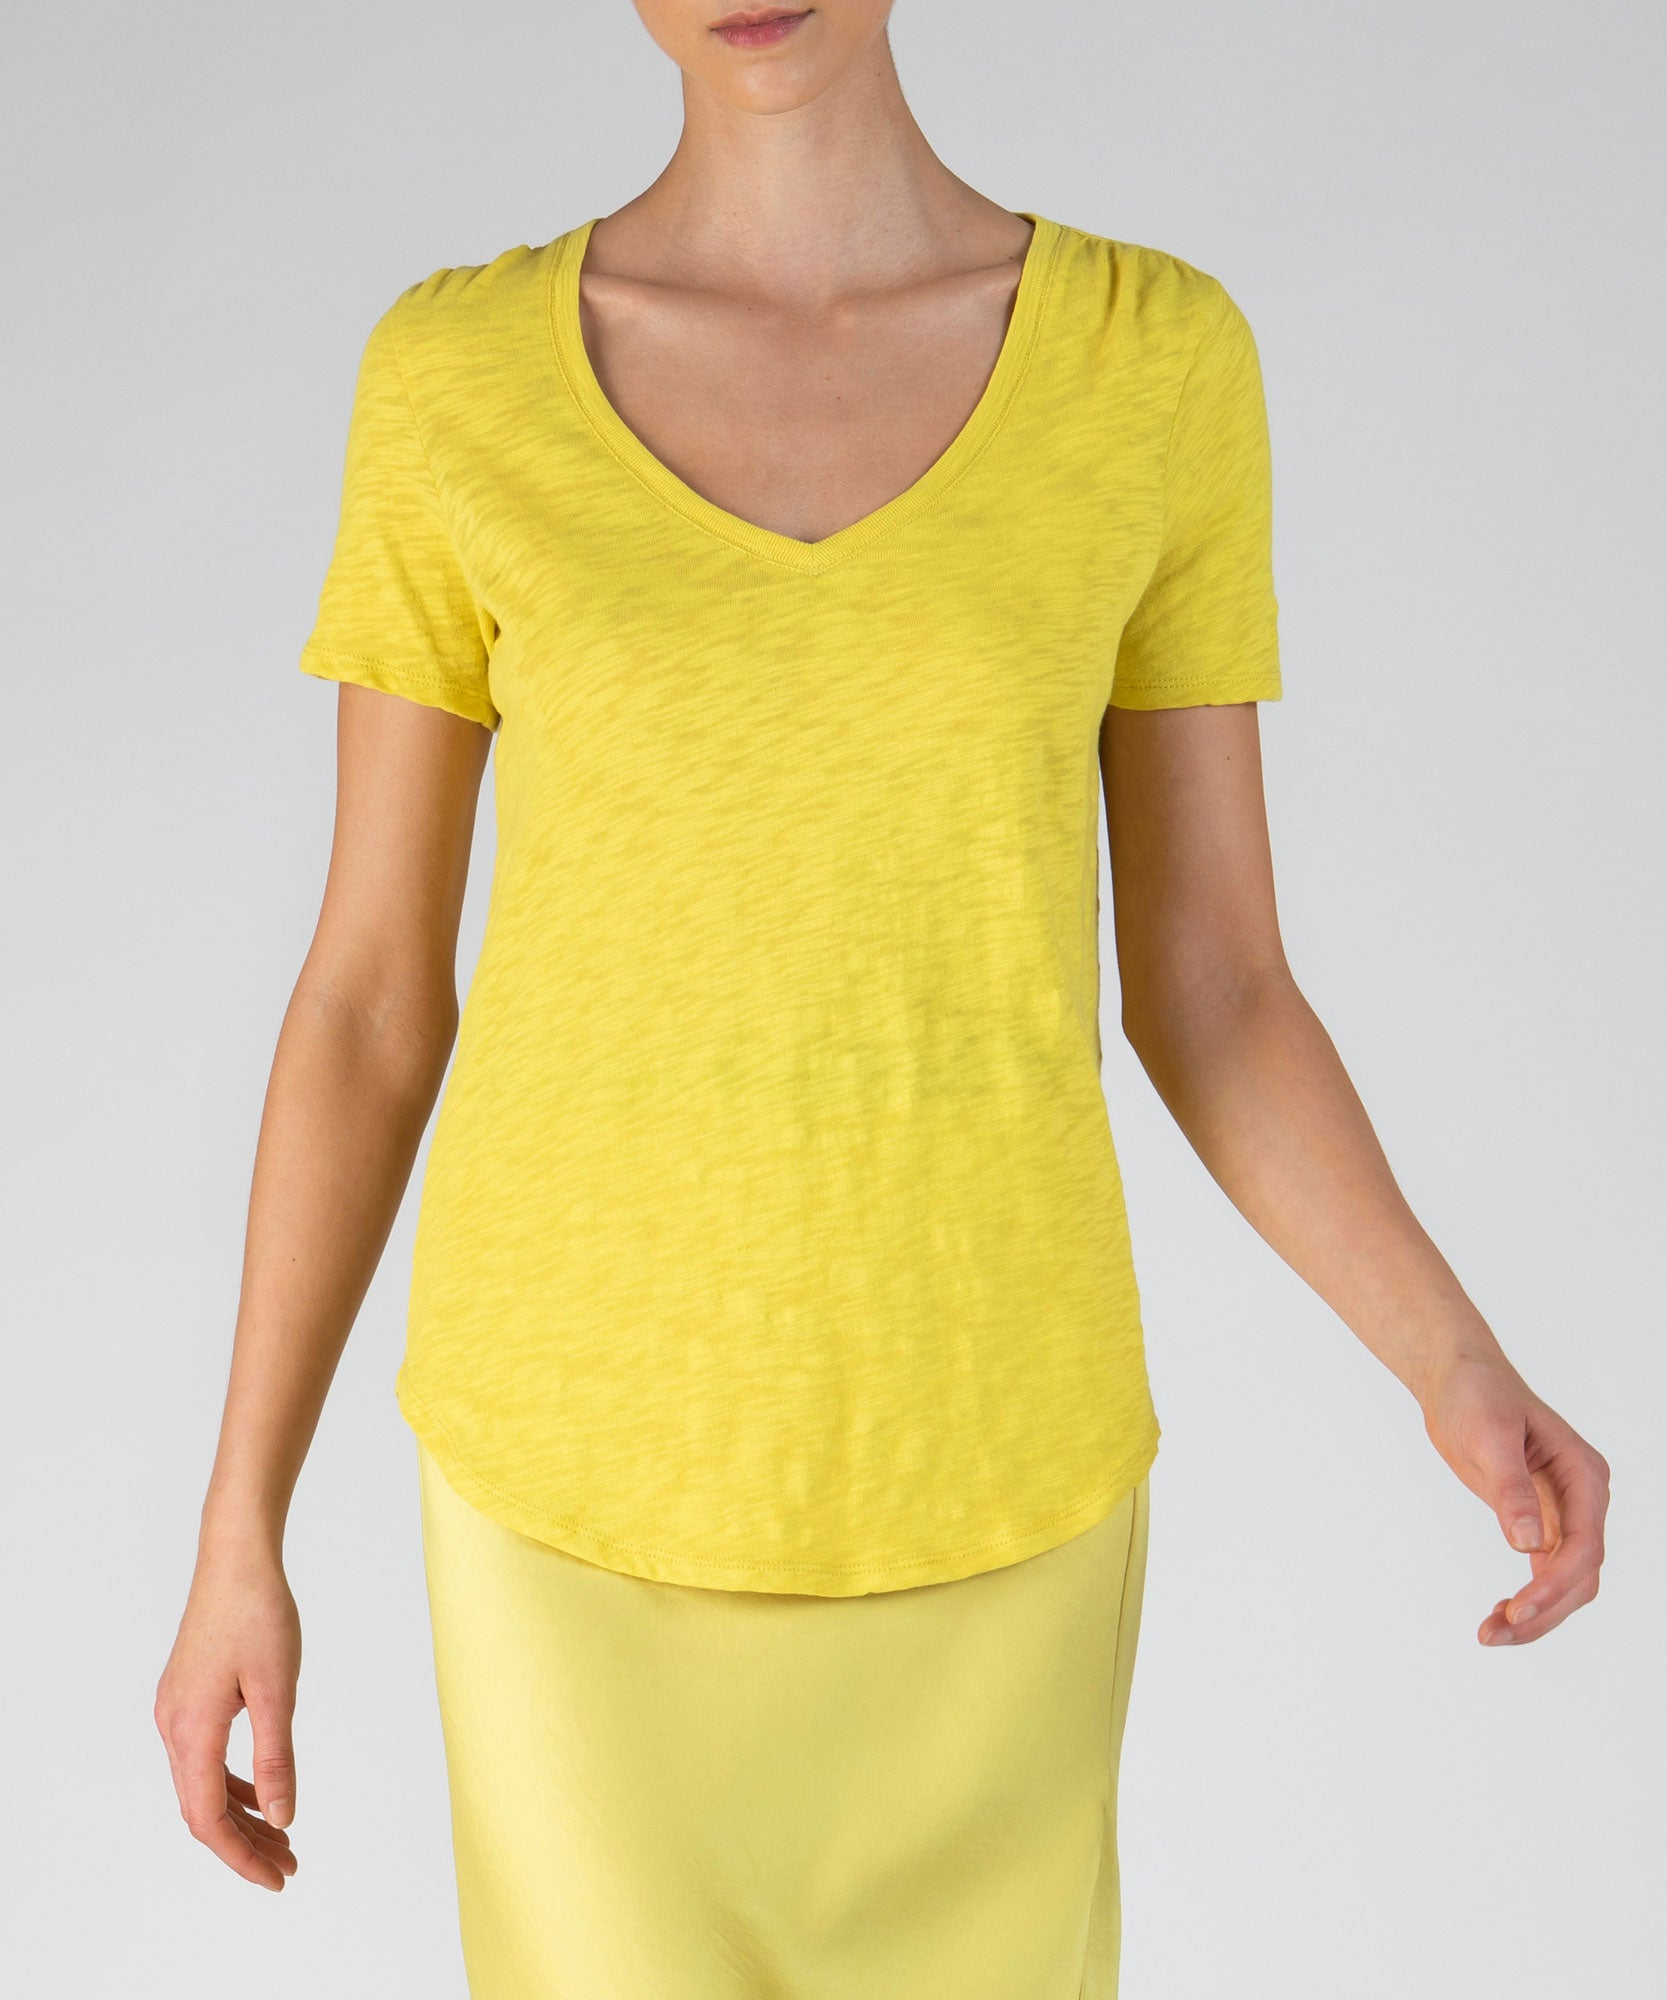 Canary Slub Jersey Classic V-Neck Tee - Women's Cotton Short Sleeve Tee by ATM Anthony Thomas Melillo